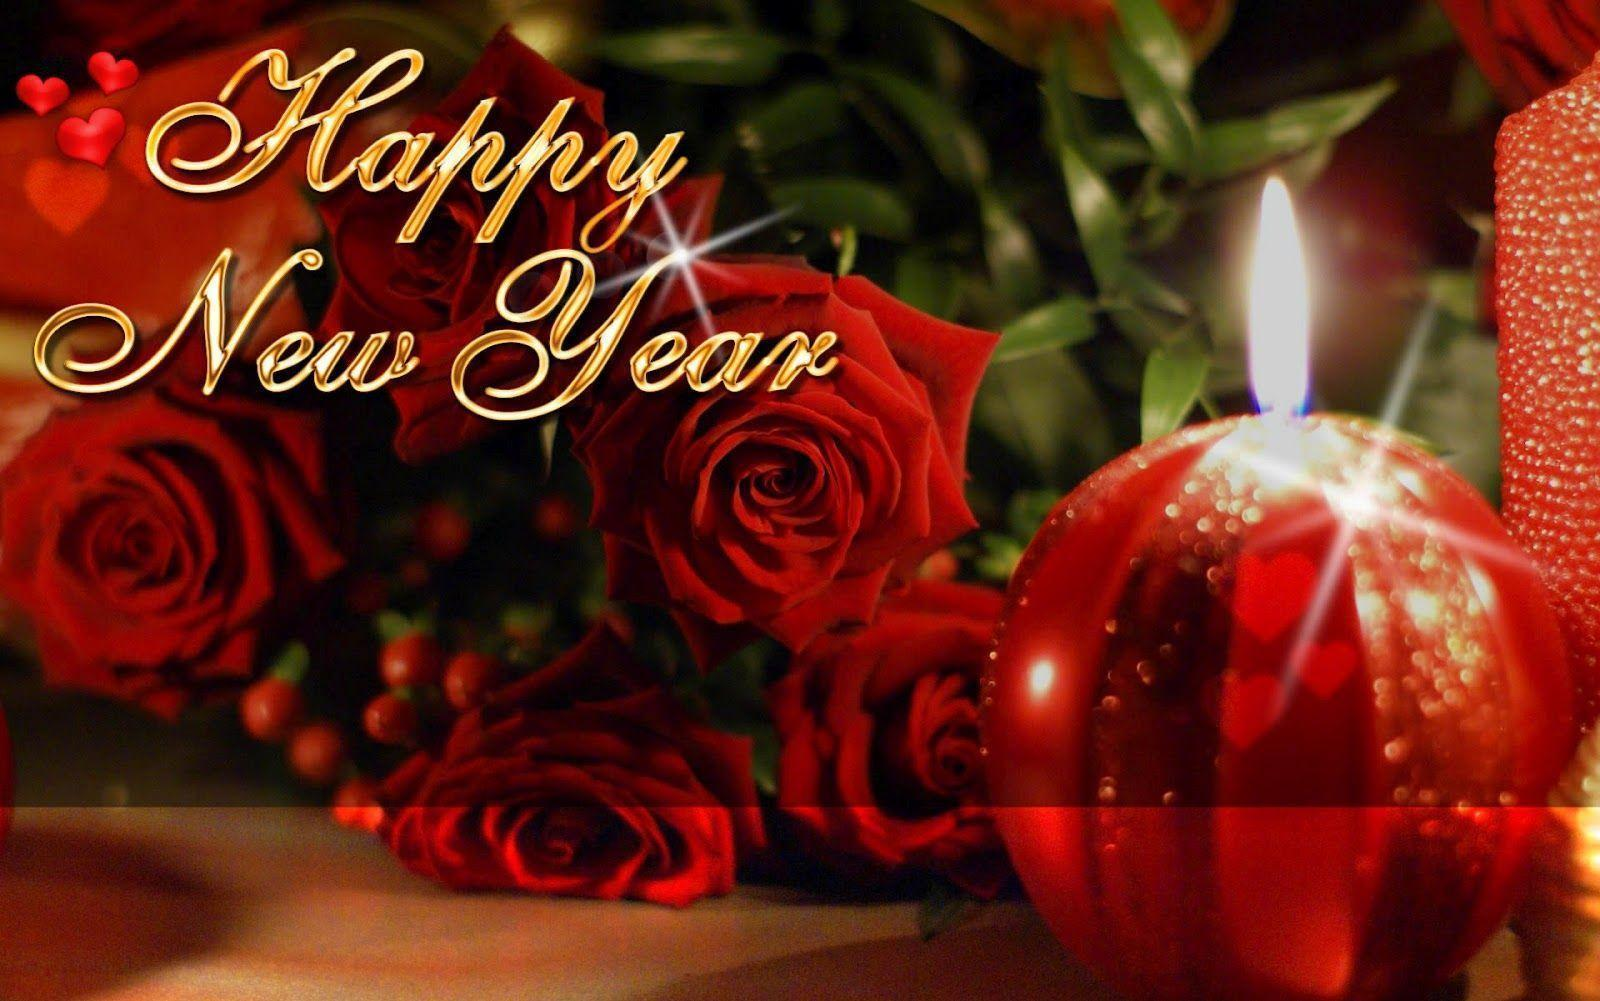 Happy New Year Wallpapers 2015 ~ HD Pictures 2015 Wallpapers